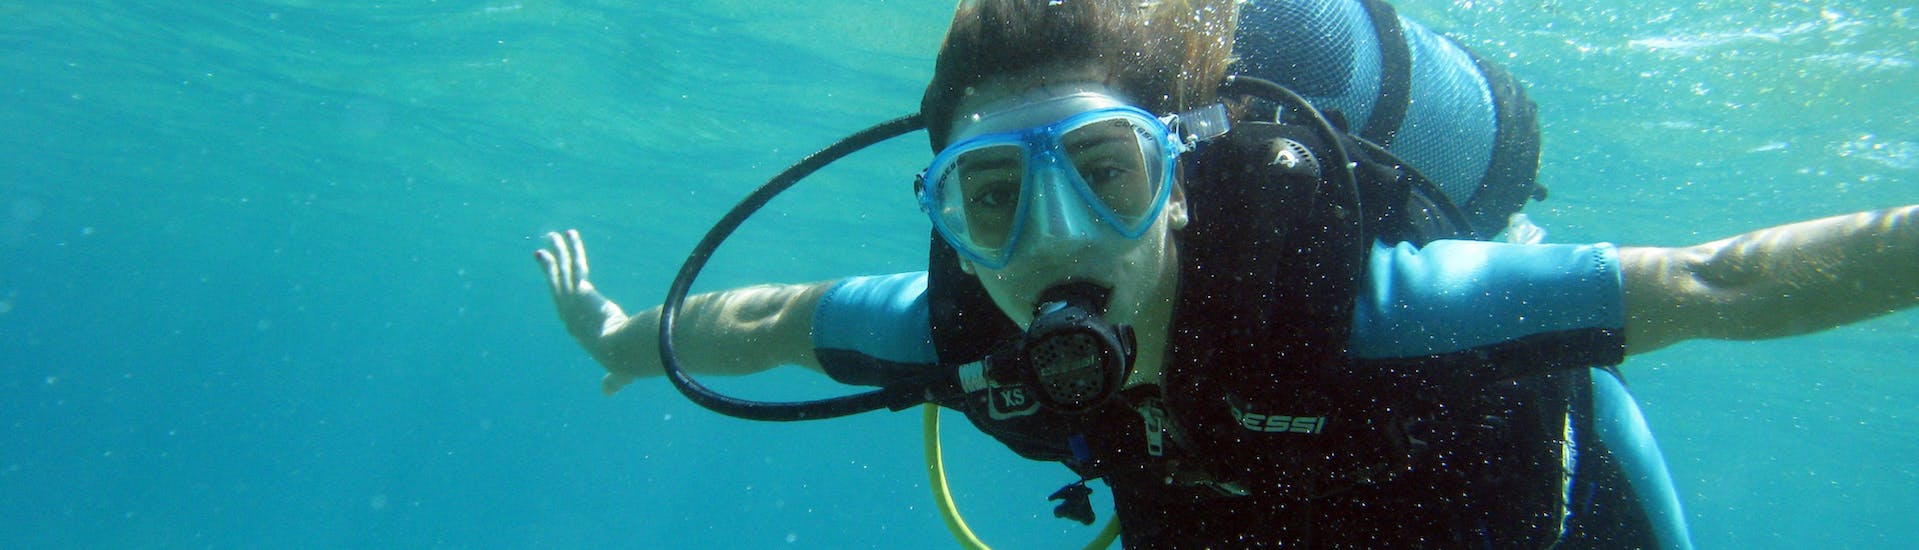 scuba-diving-course-for-beginners-padi-open-water-diver-kanelakis-diving-experiences